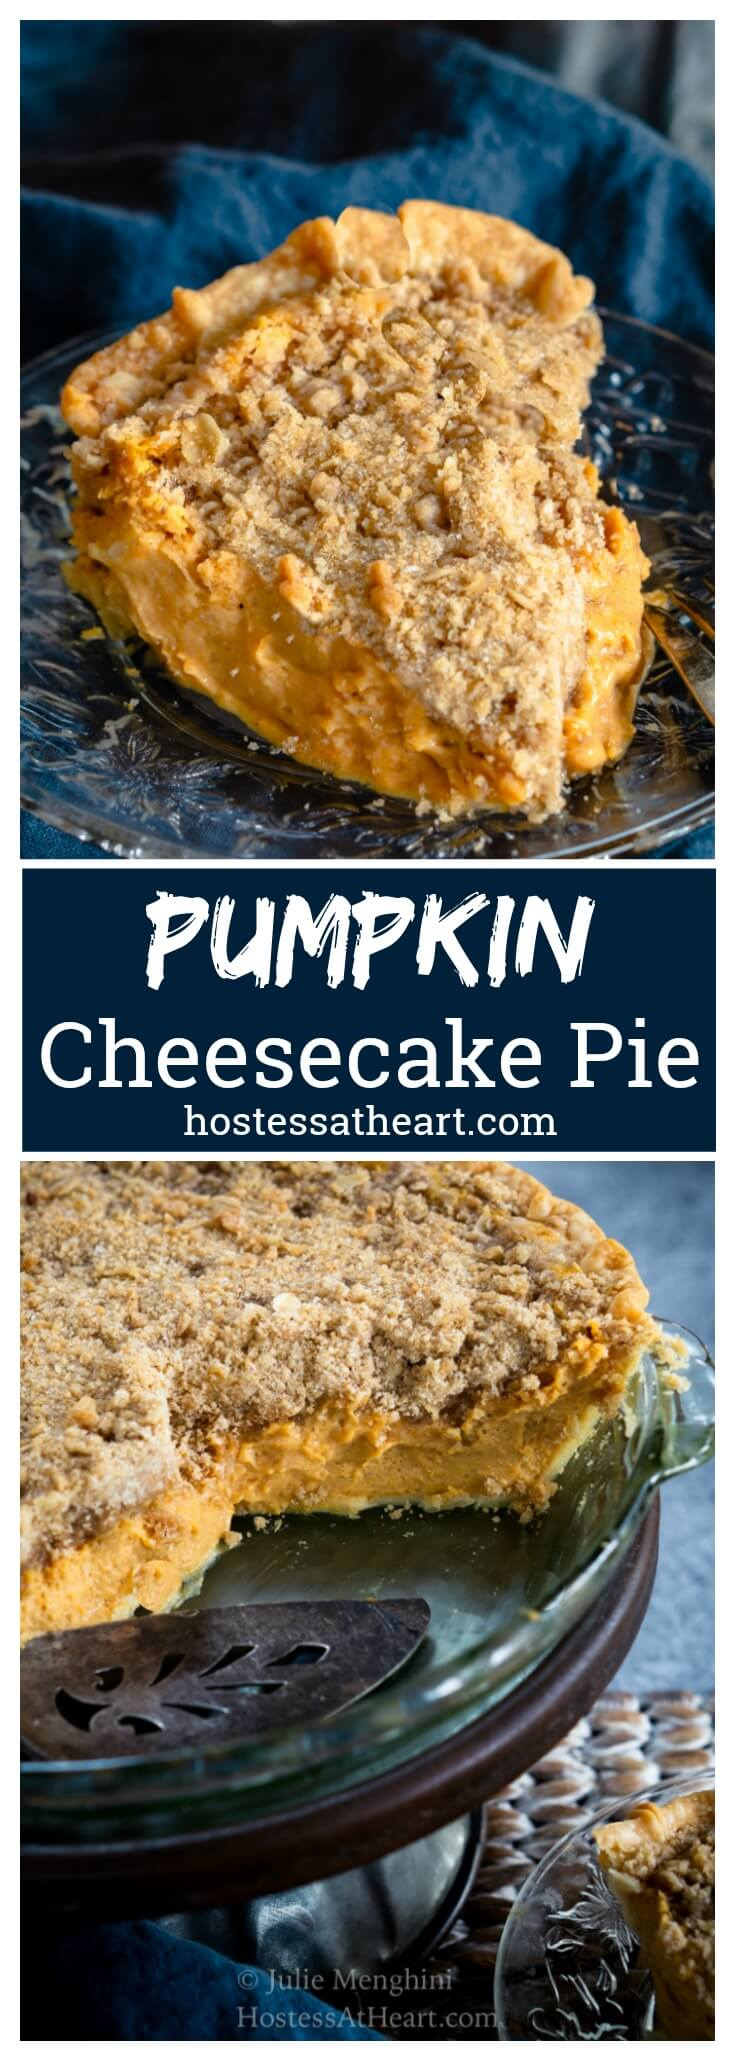 This rich and creamy Pumpkin Cheesecake Pie is topped with a mouth-watering buttery brown sugar crumble.It's perfect for any occasion and special enough for the holidays. | HostessAtHeart.com #pie #pumpkincheesecake #recipe #fall #thanksgiving #pumpkin